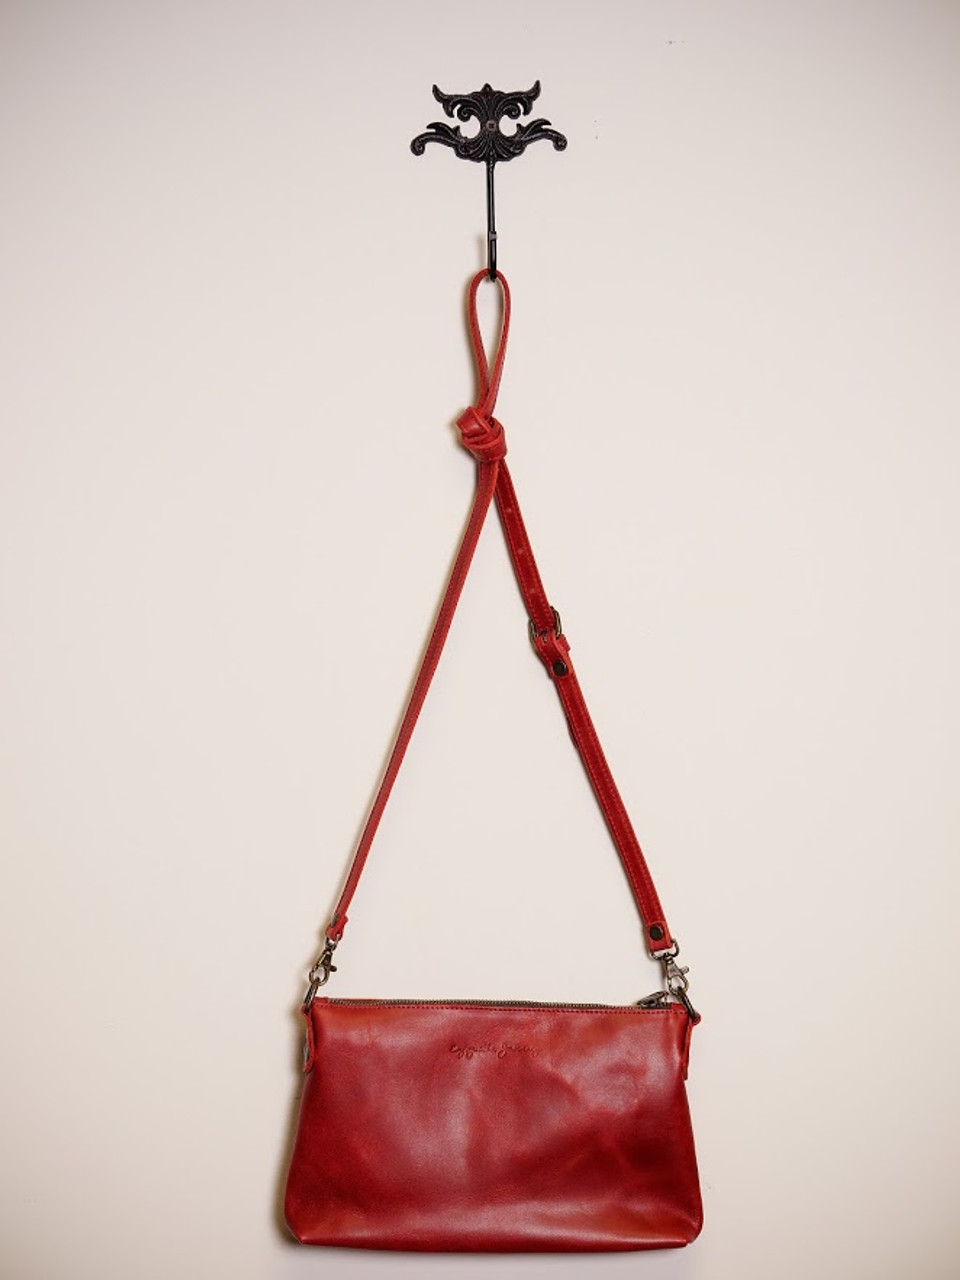 Shiny, Red Leather Purse Hangs on Antique Hook